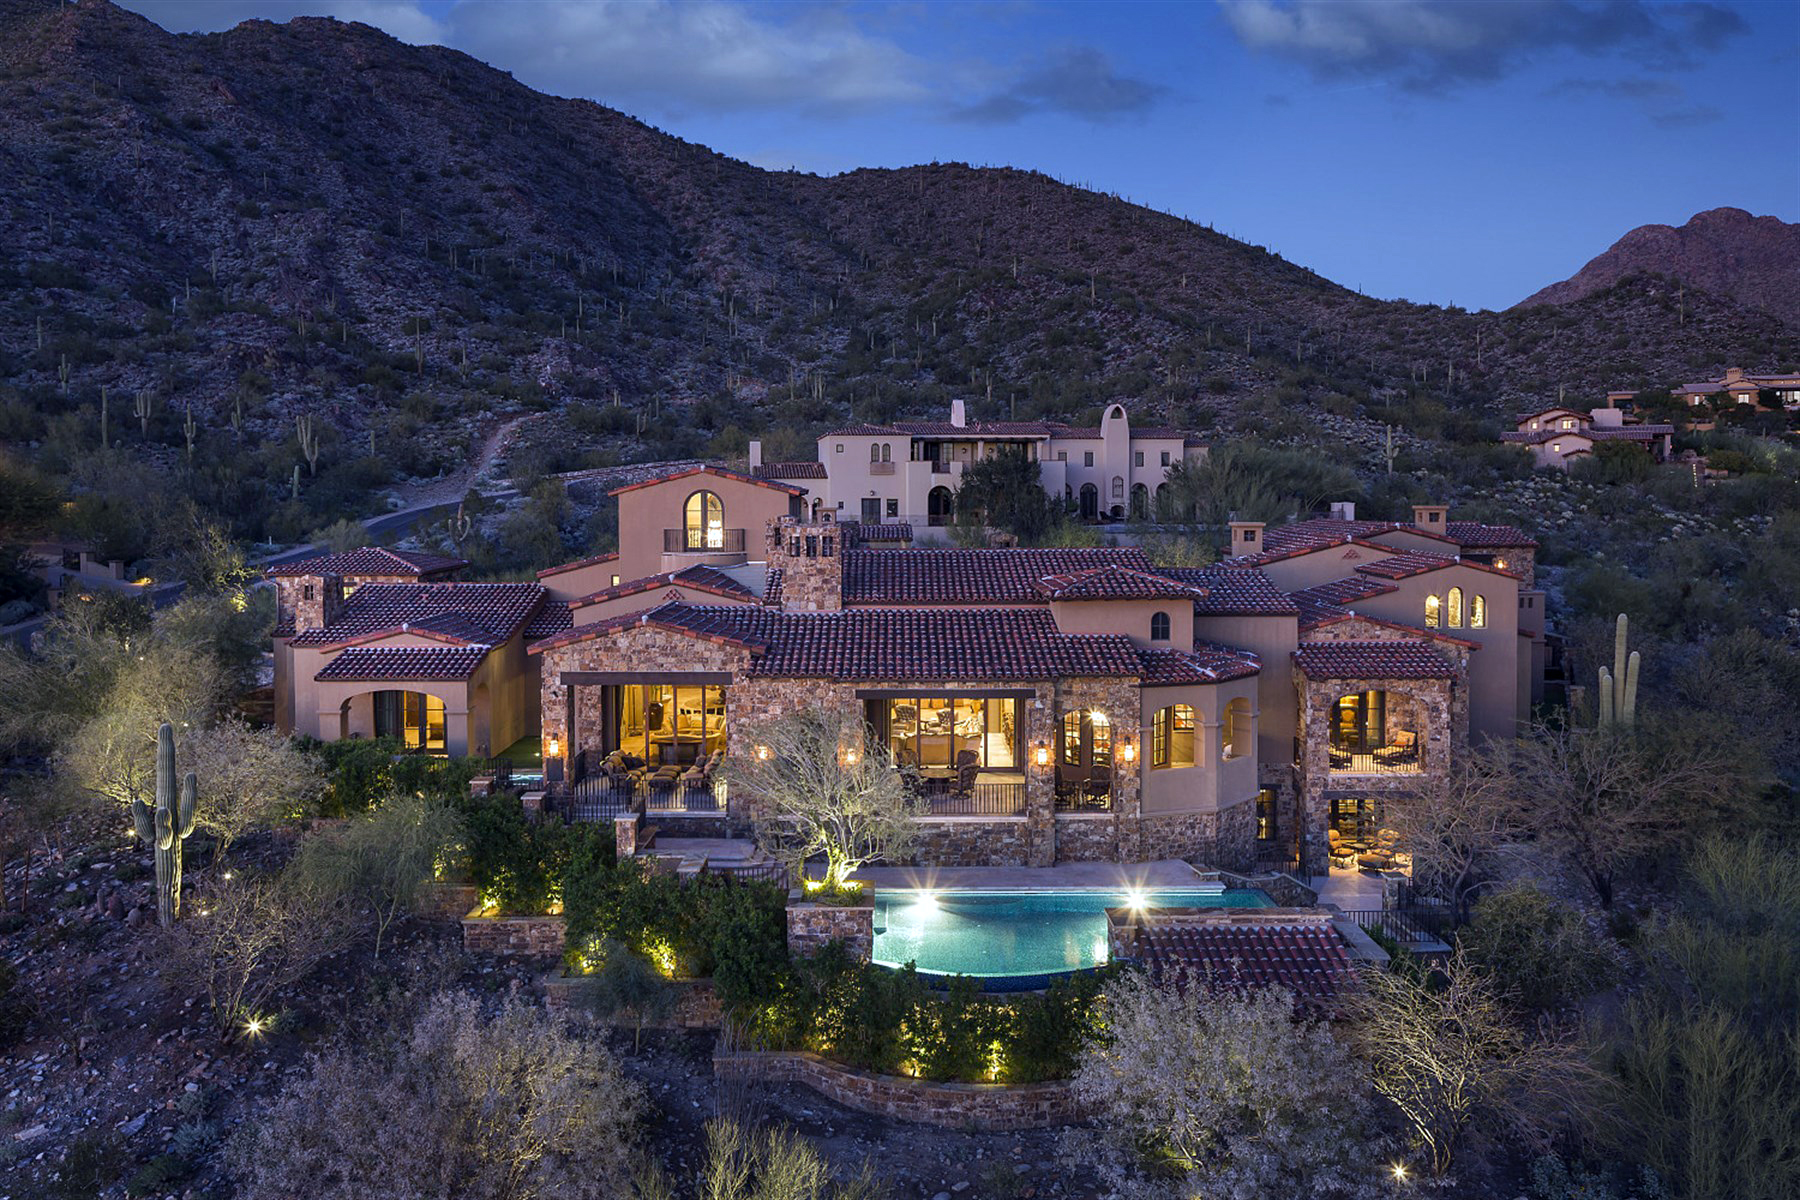 Nhà ở một gia đình vì Bán tại Exquisite European Manor in The Exclusive Upper Canyon at Silverleaf 20913 N 104th Street #1488 Scottsdale, Arizona 85255 Hoa Kỳ